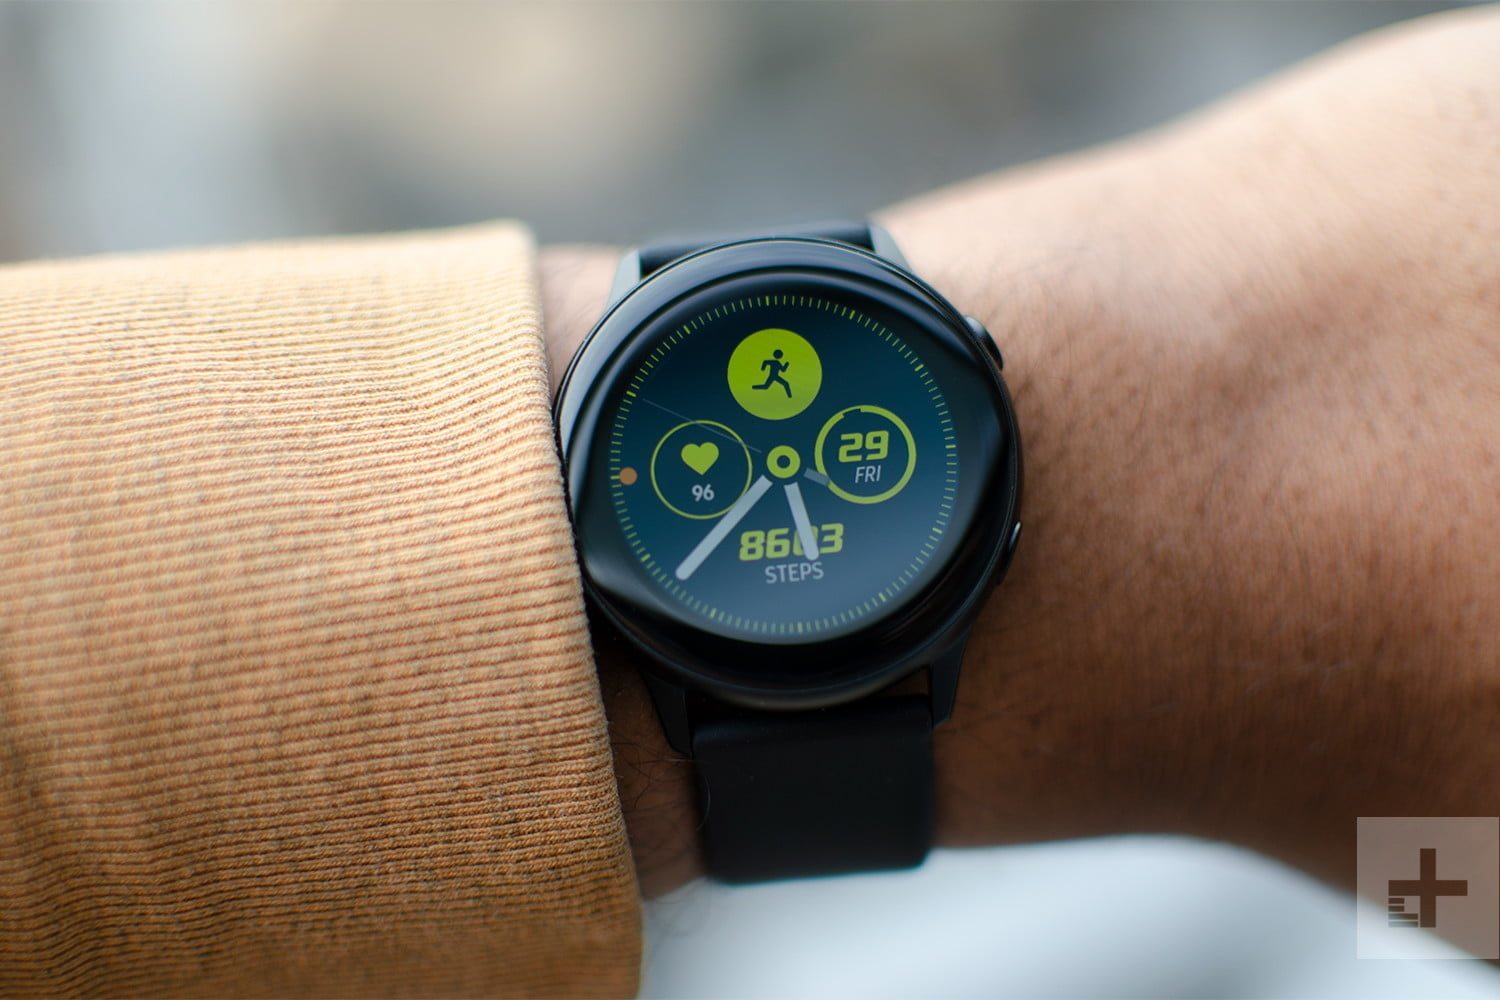 Samsung Galaxy Watch Active & Galaxy Fit: Design, Specs, and